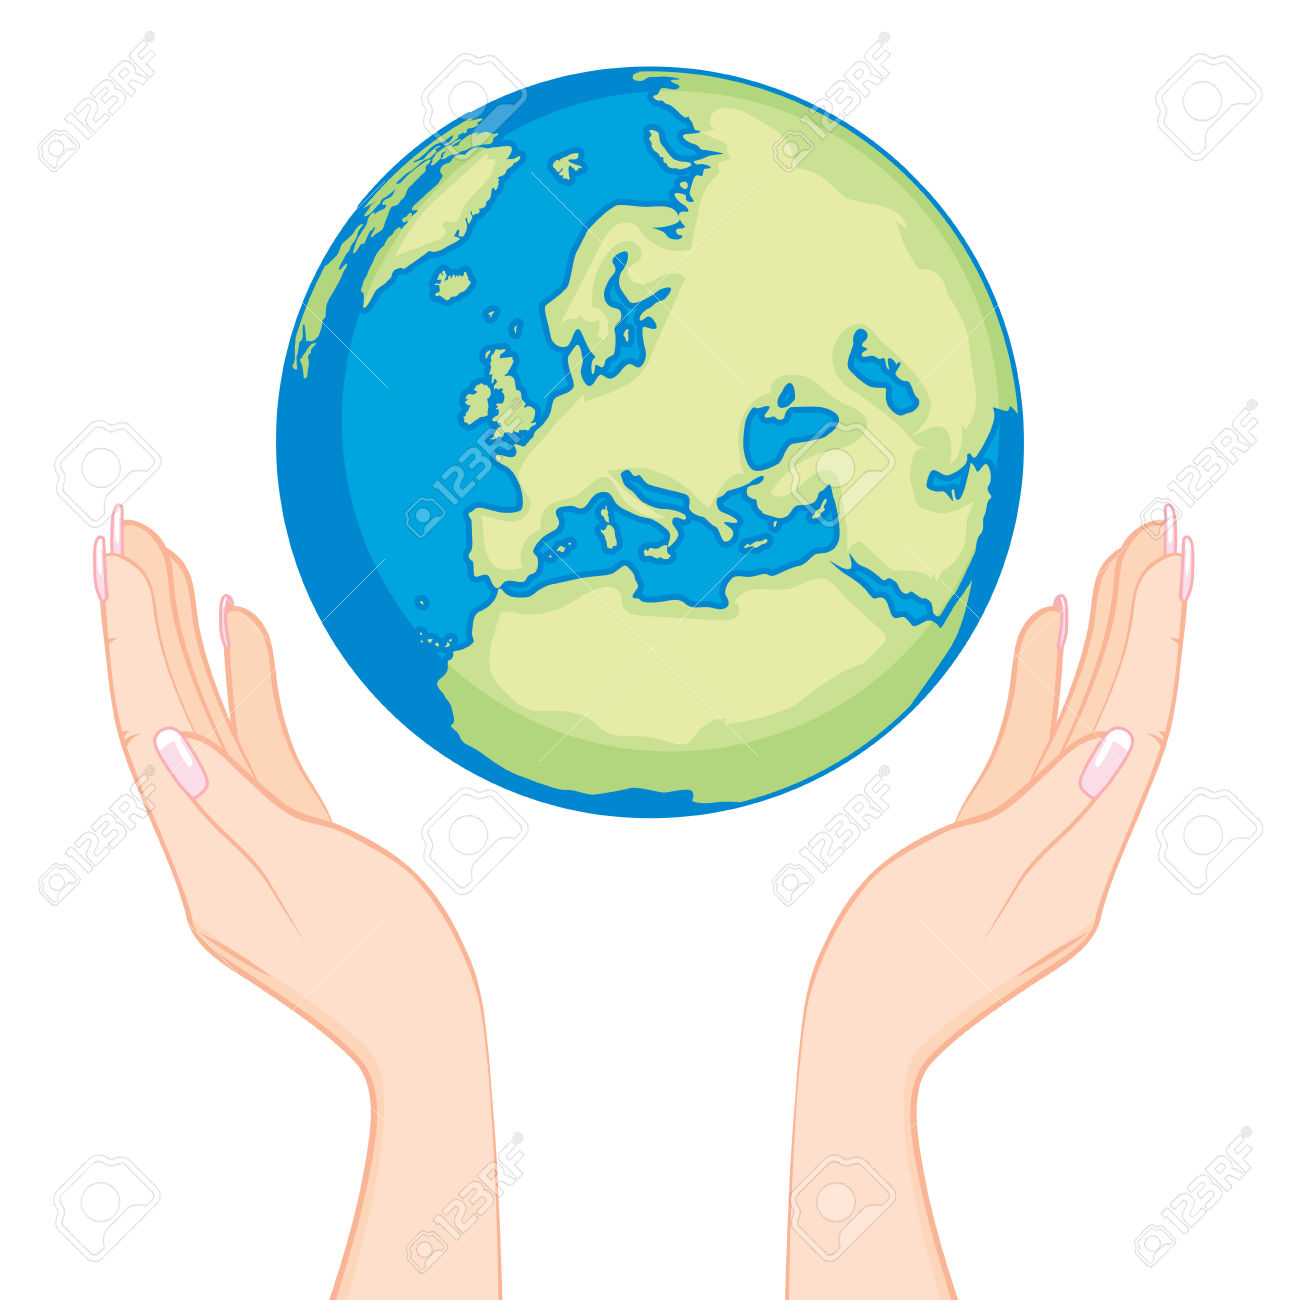 Ecology Concept Of Beautiful Woman Hands Holding Earth Globe.